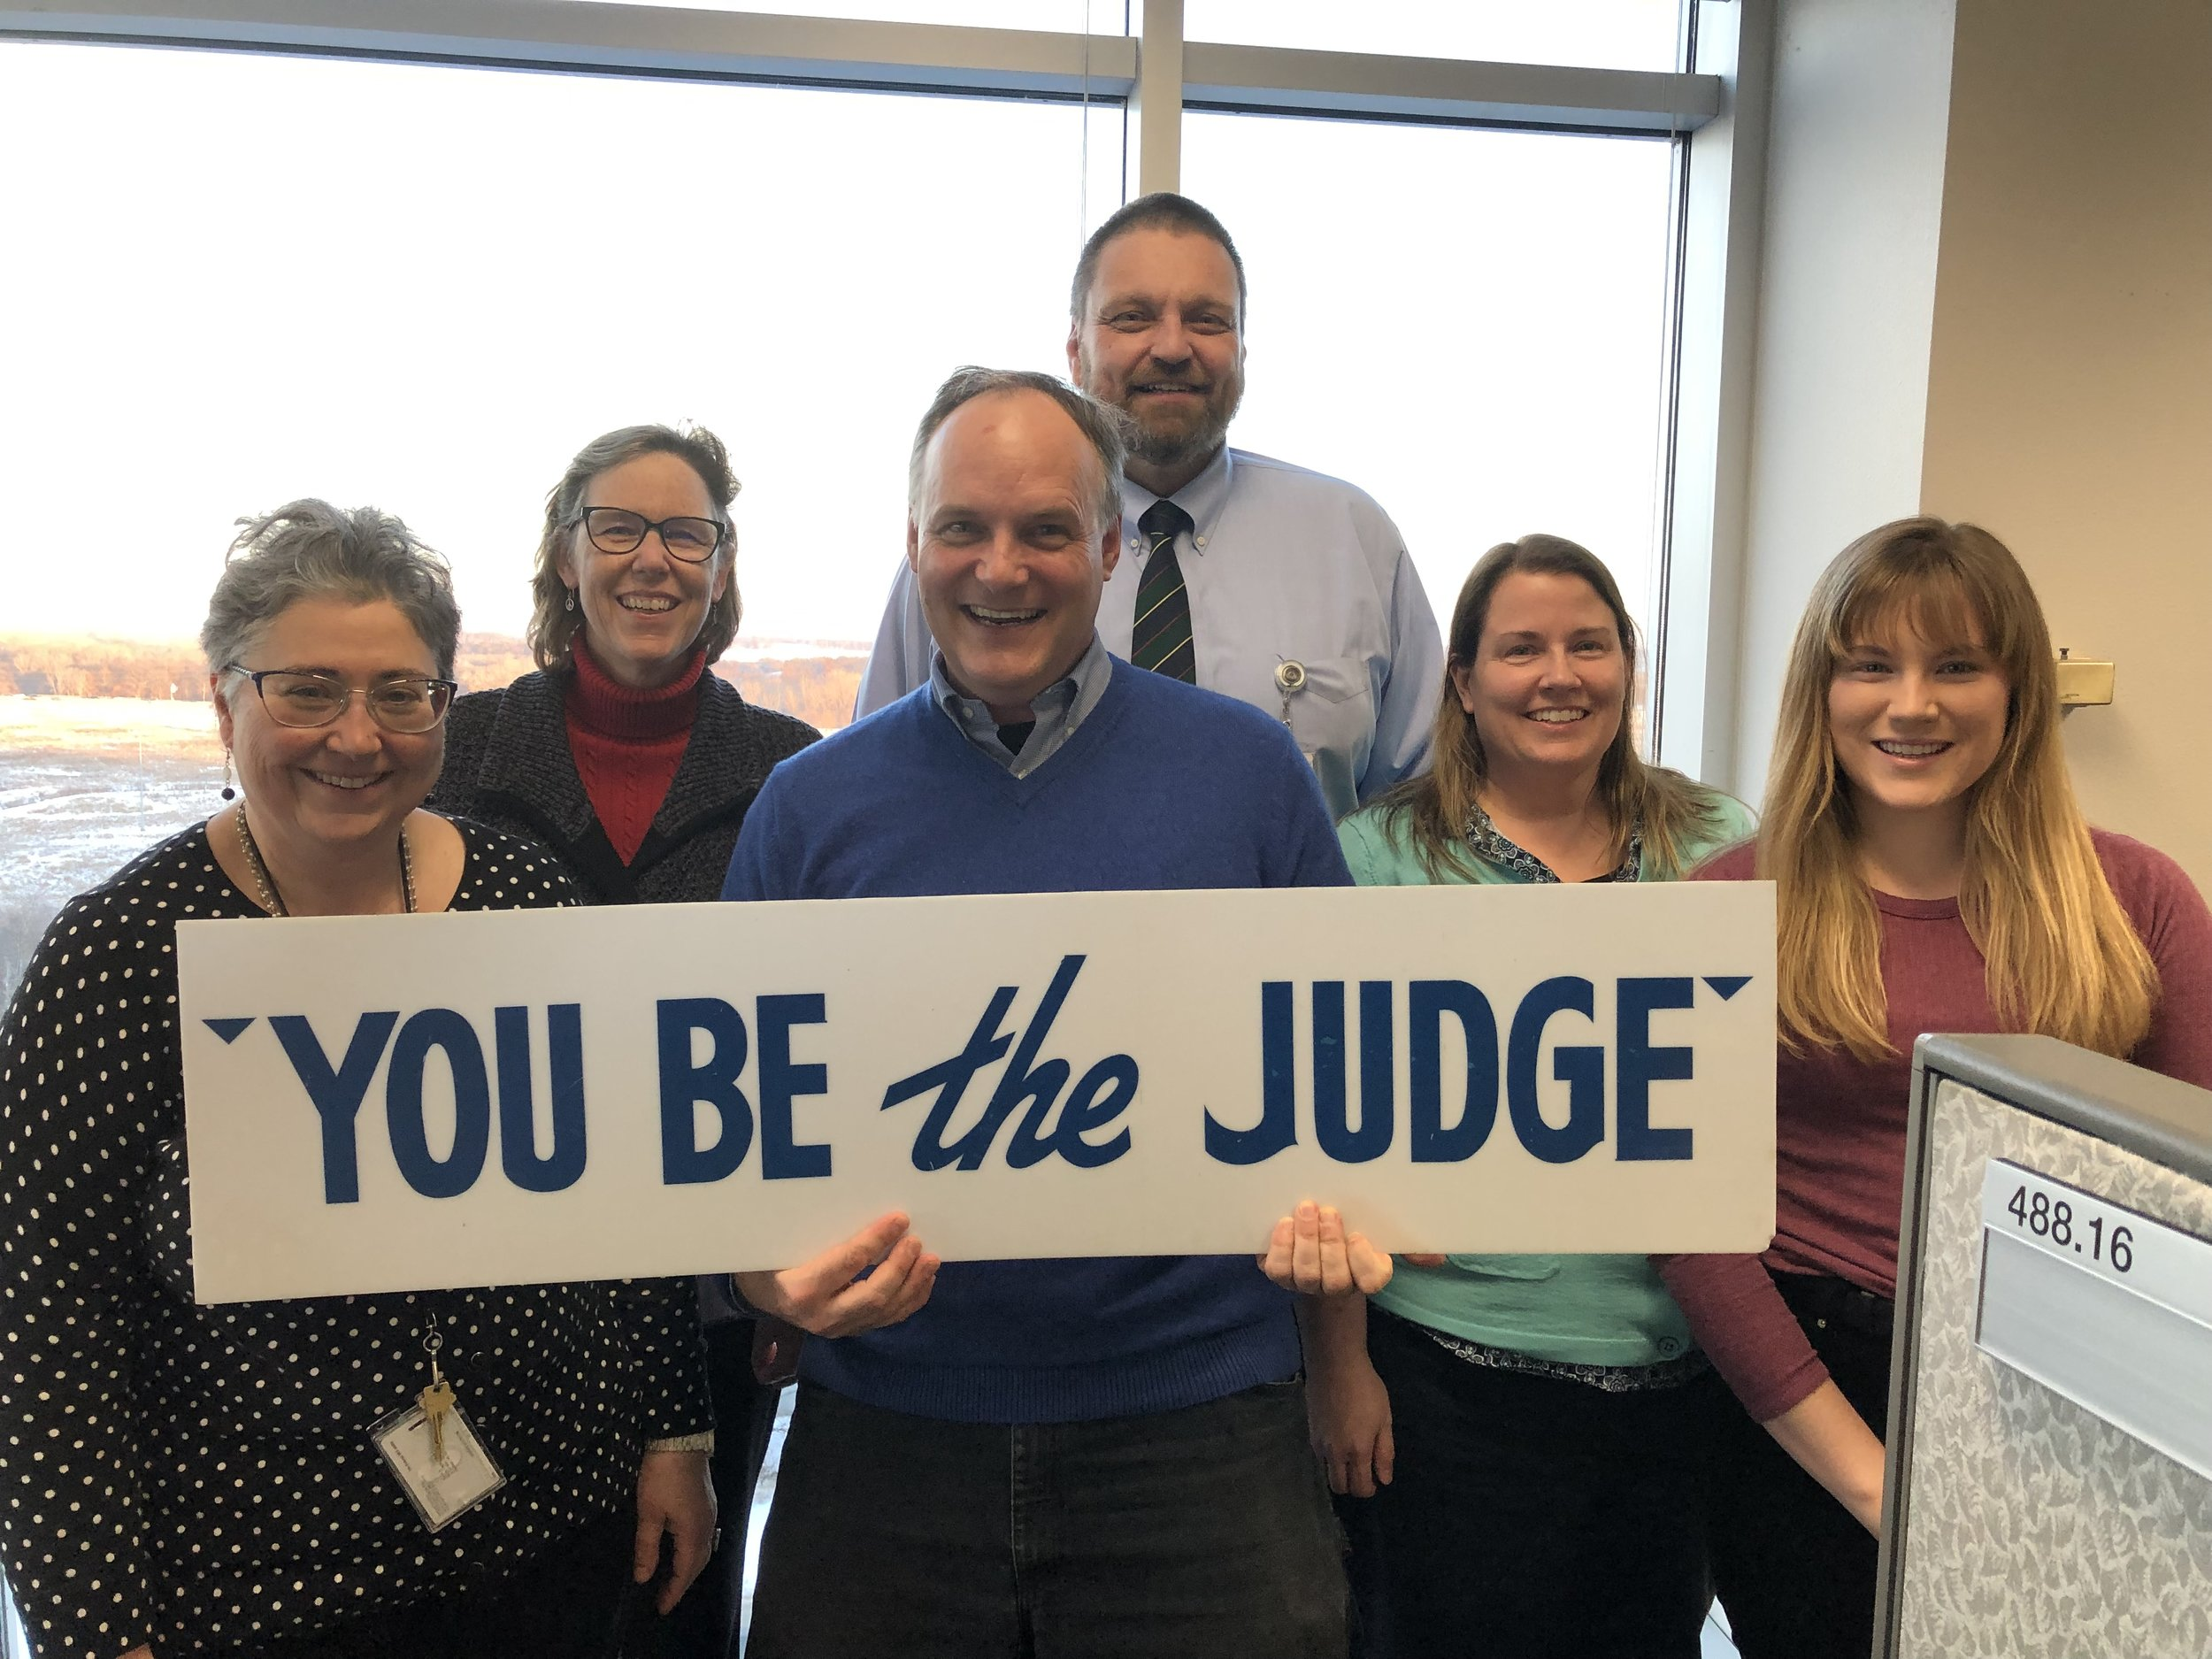 """Wisconsin Department of Agriculture, Trade & Consumer Protection - Thanks to Legal Counsel Cheryl Daniels, State Bar leader and former League of Women Voters President and ALJ, for the gift of the """"You Be the Judge"""" sign. Pictured with Cheryl & Paul are friends & former DATCP colleagues: Atty Liz Kennebeck, Atty Paul LaZotte, Atty Sheri Walz, and Public Records Specialist Bridget Frick."""